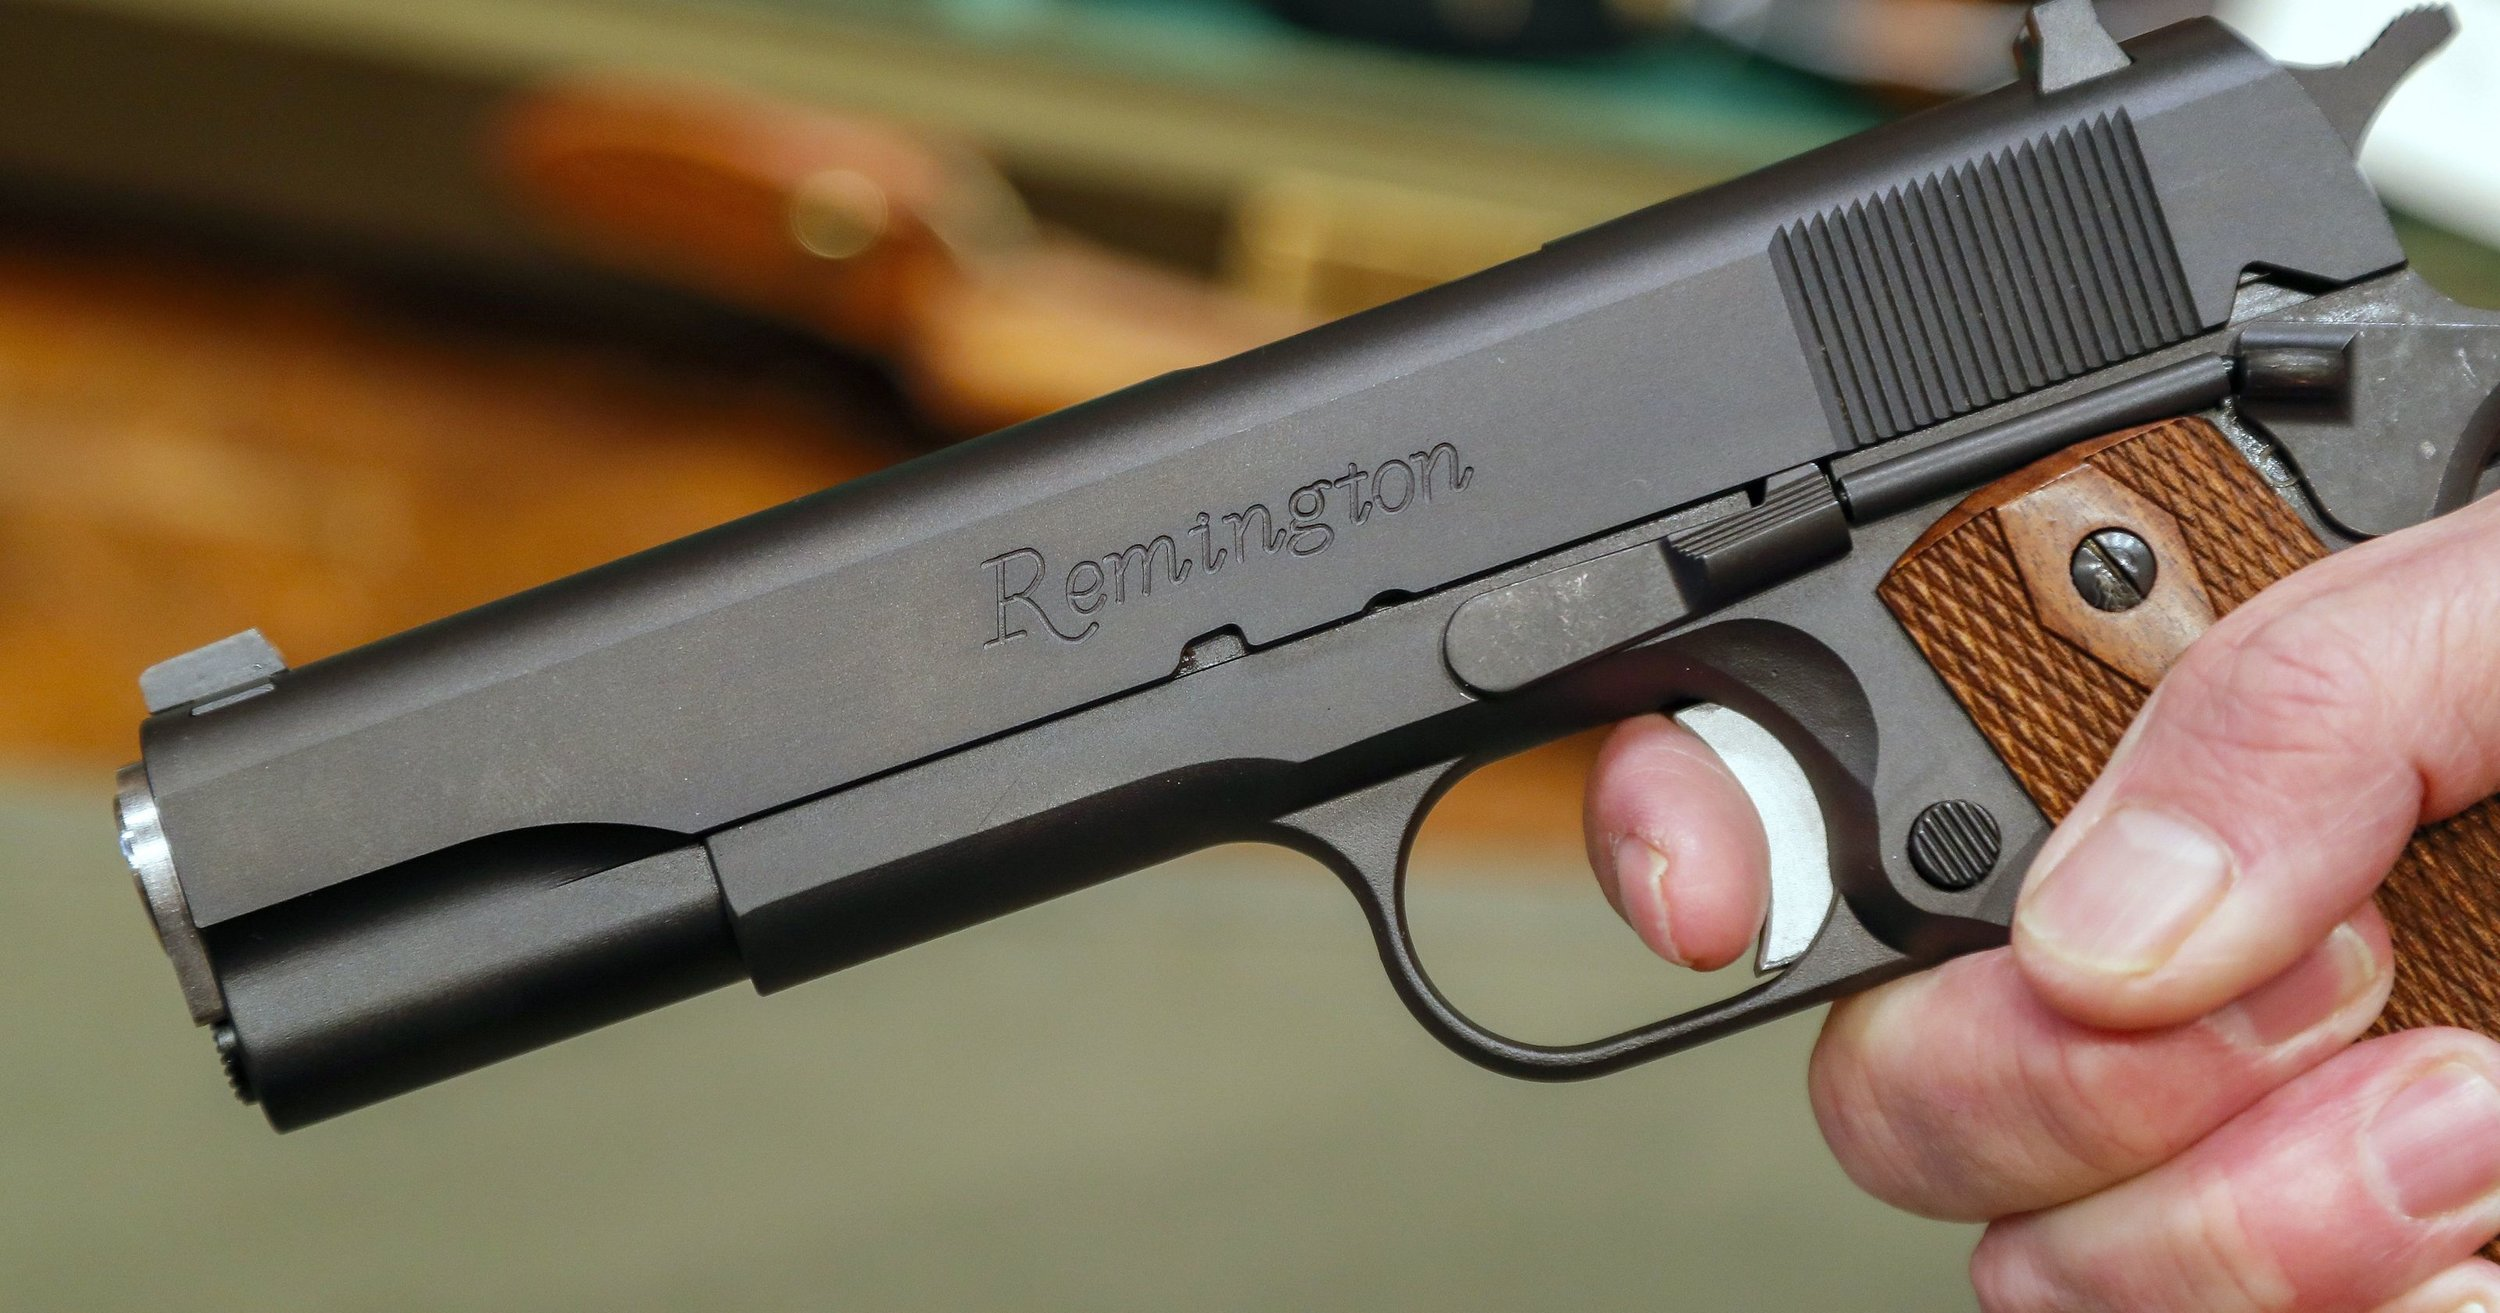 This is a gun. The CDC reported Friday that DON'T EAT IT! IT'S MADE OF METAL!